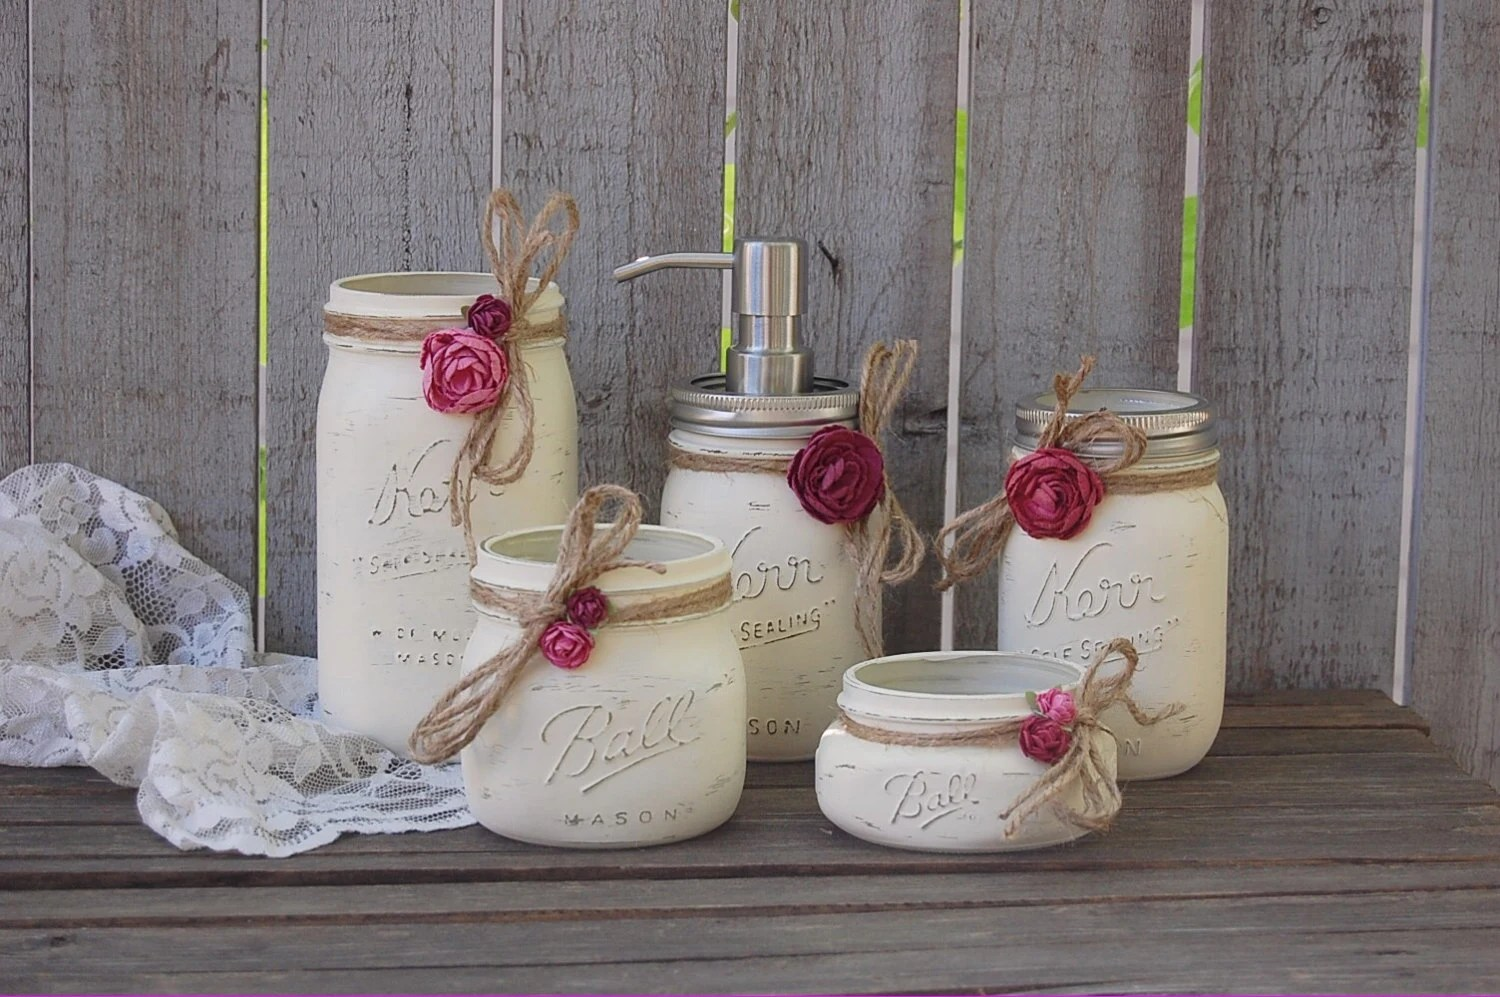 Bad Accessoires Shabby Chic Mason Jar Bathroom Set Ivory Orchid Rose Shabby Chic Soap